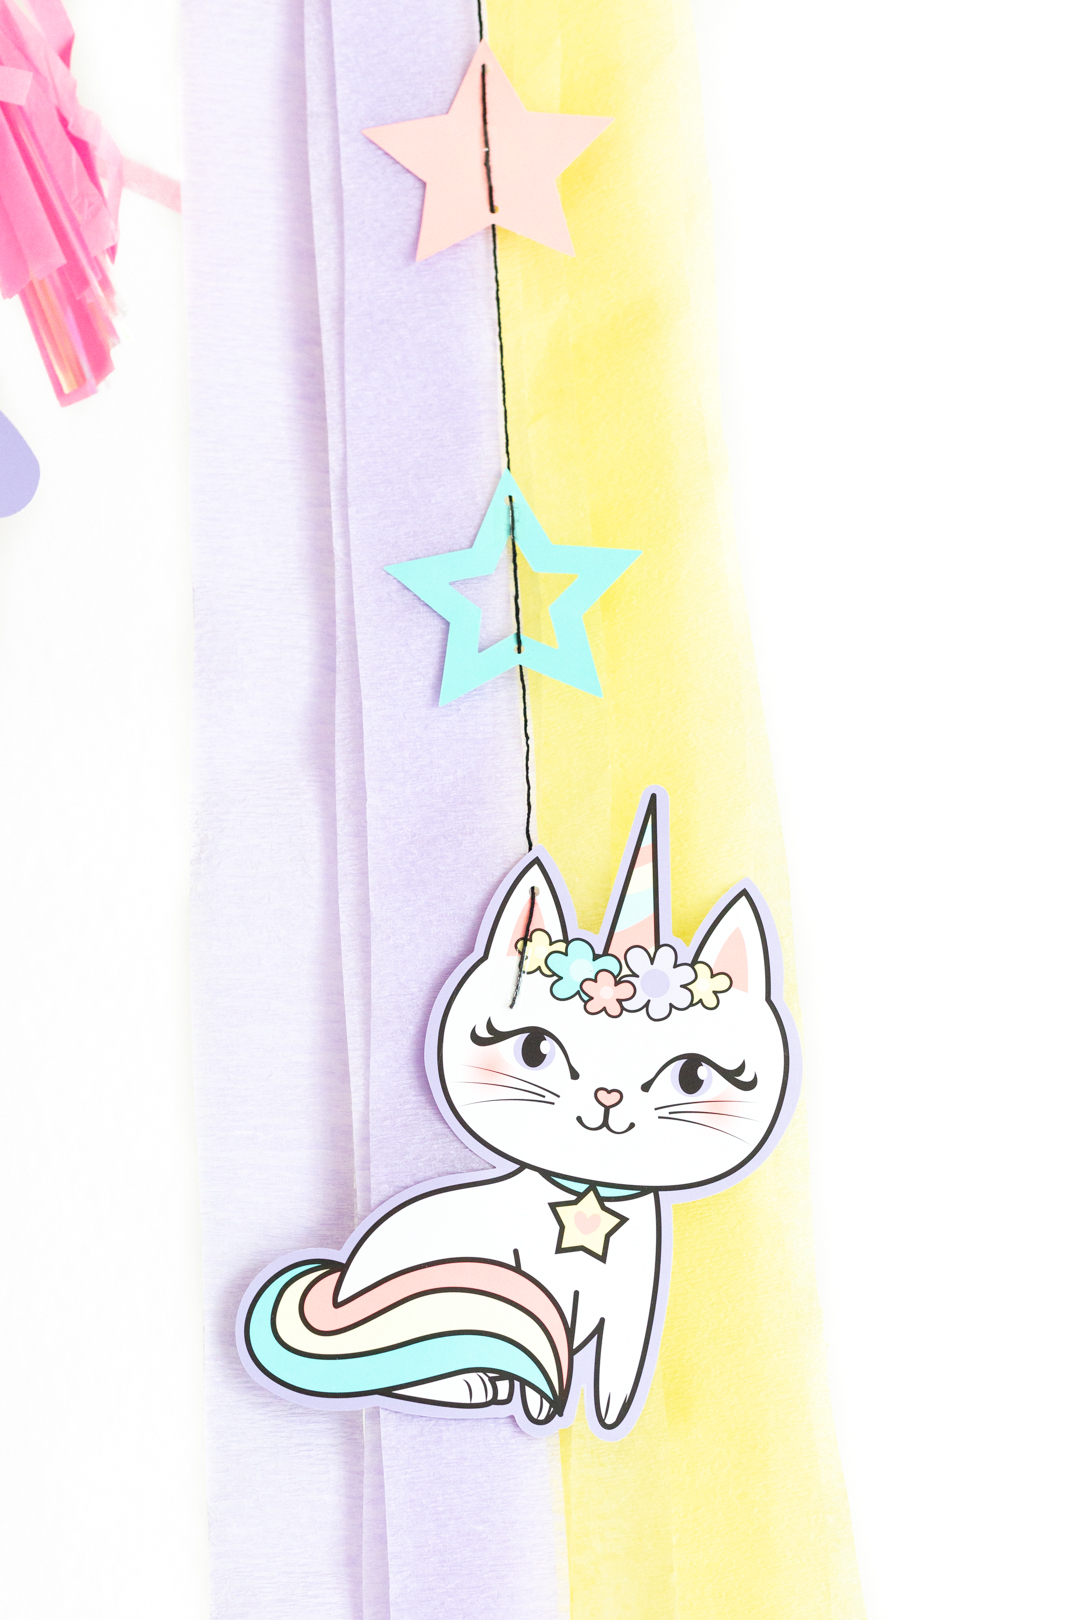 caticorn hanging decoration against yellow and purple streamers